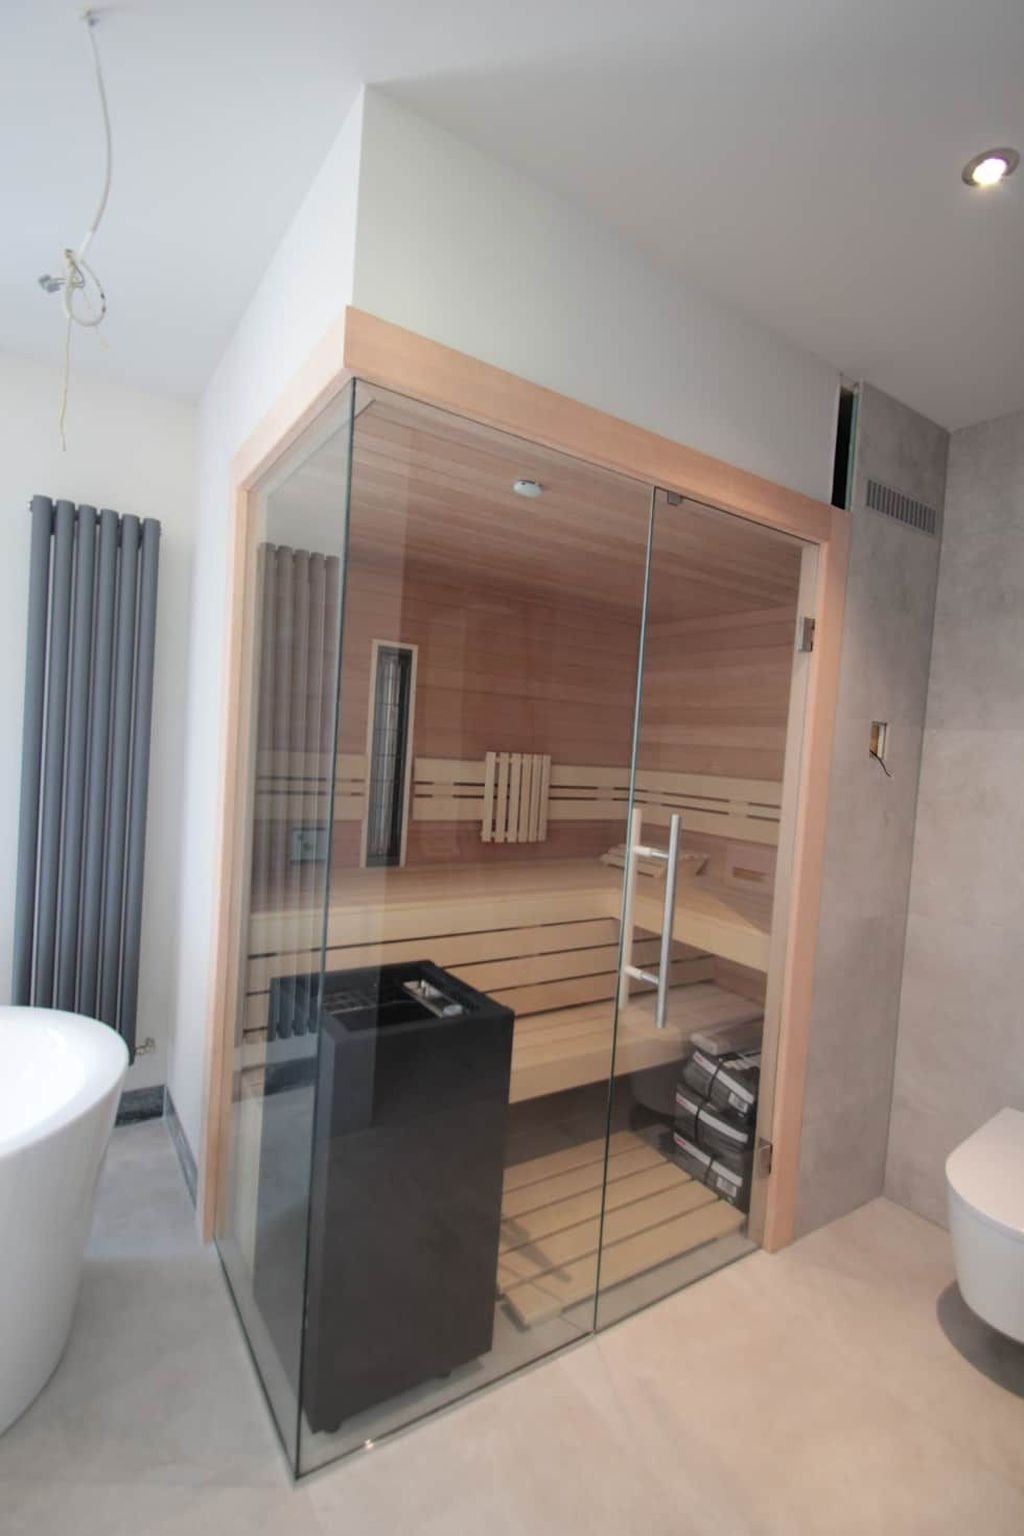 Bathroom Sauna And Steam Room: Pin By Homystyle On Interior Design In 2019